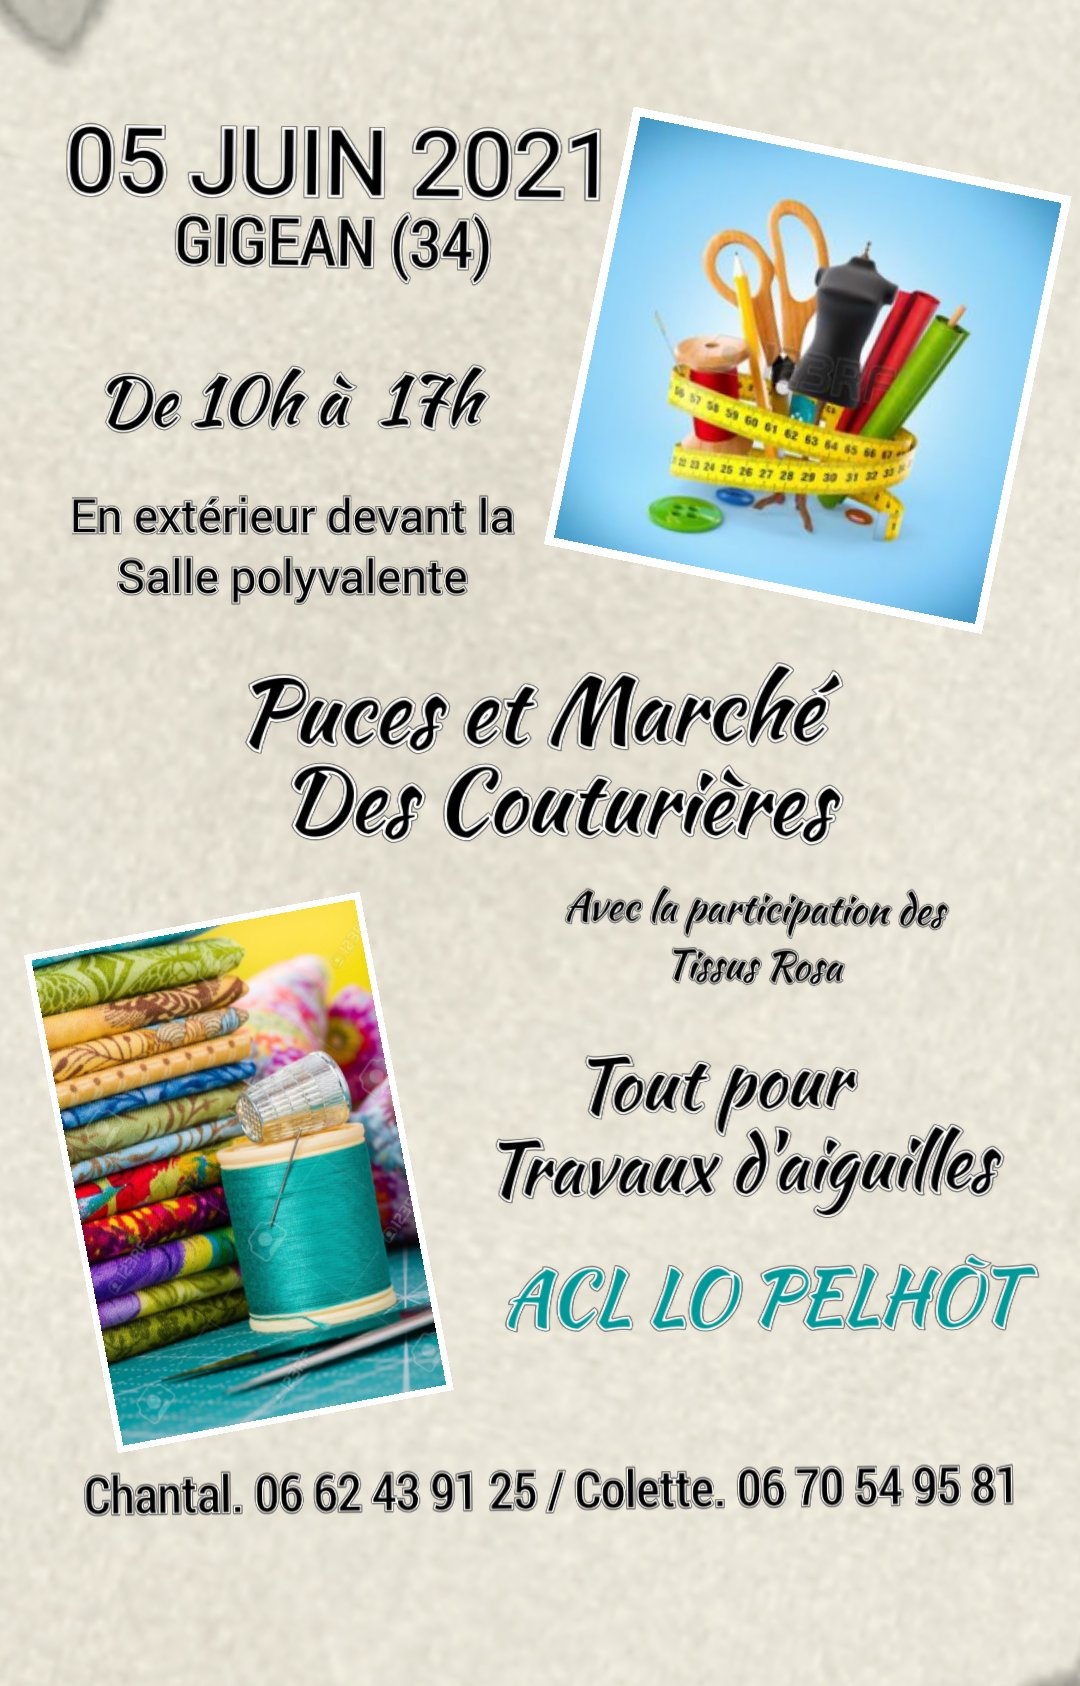 affiche_puces_couturieres.jpg